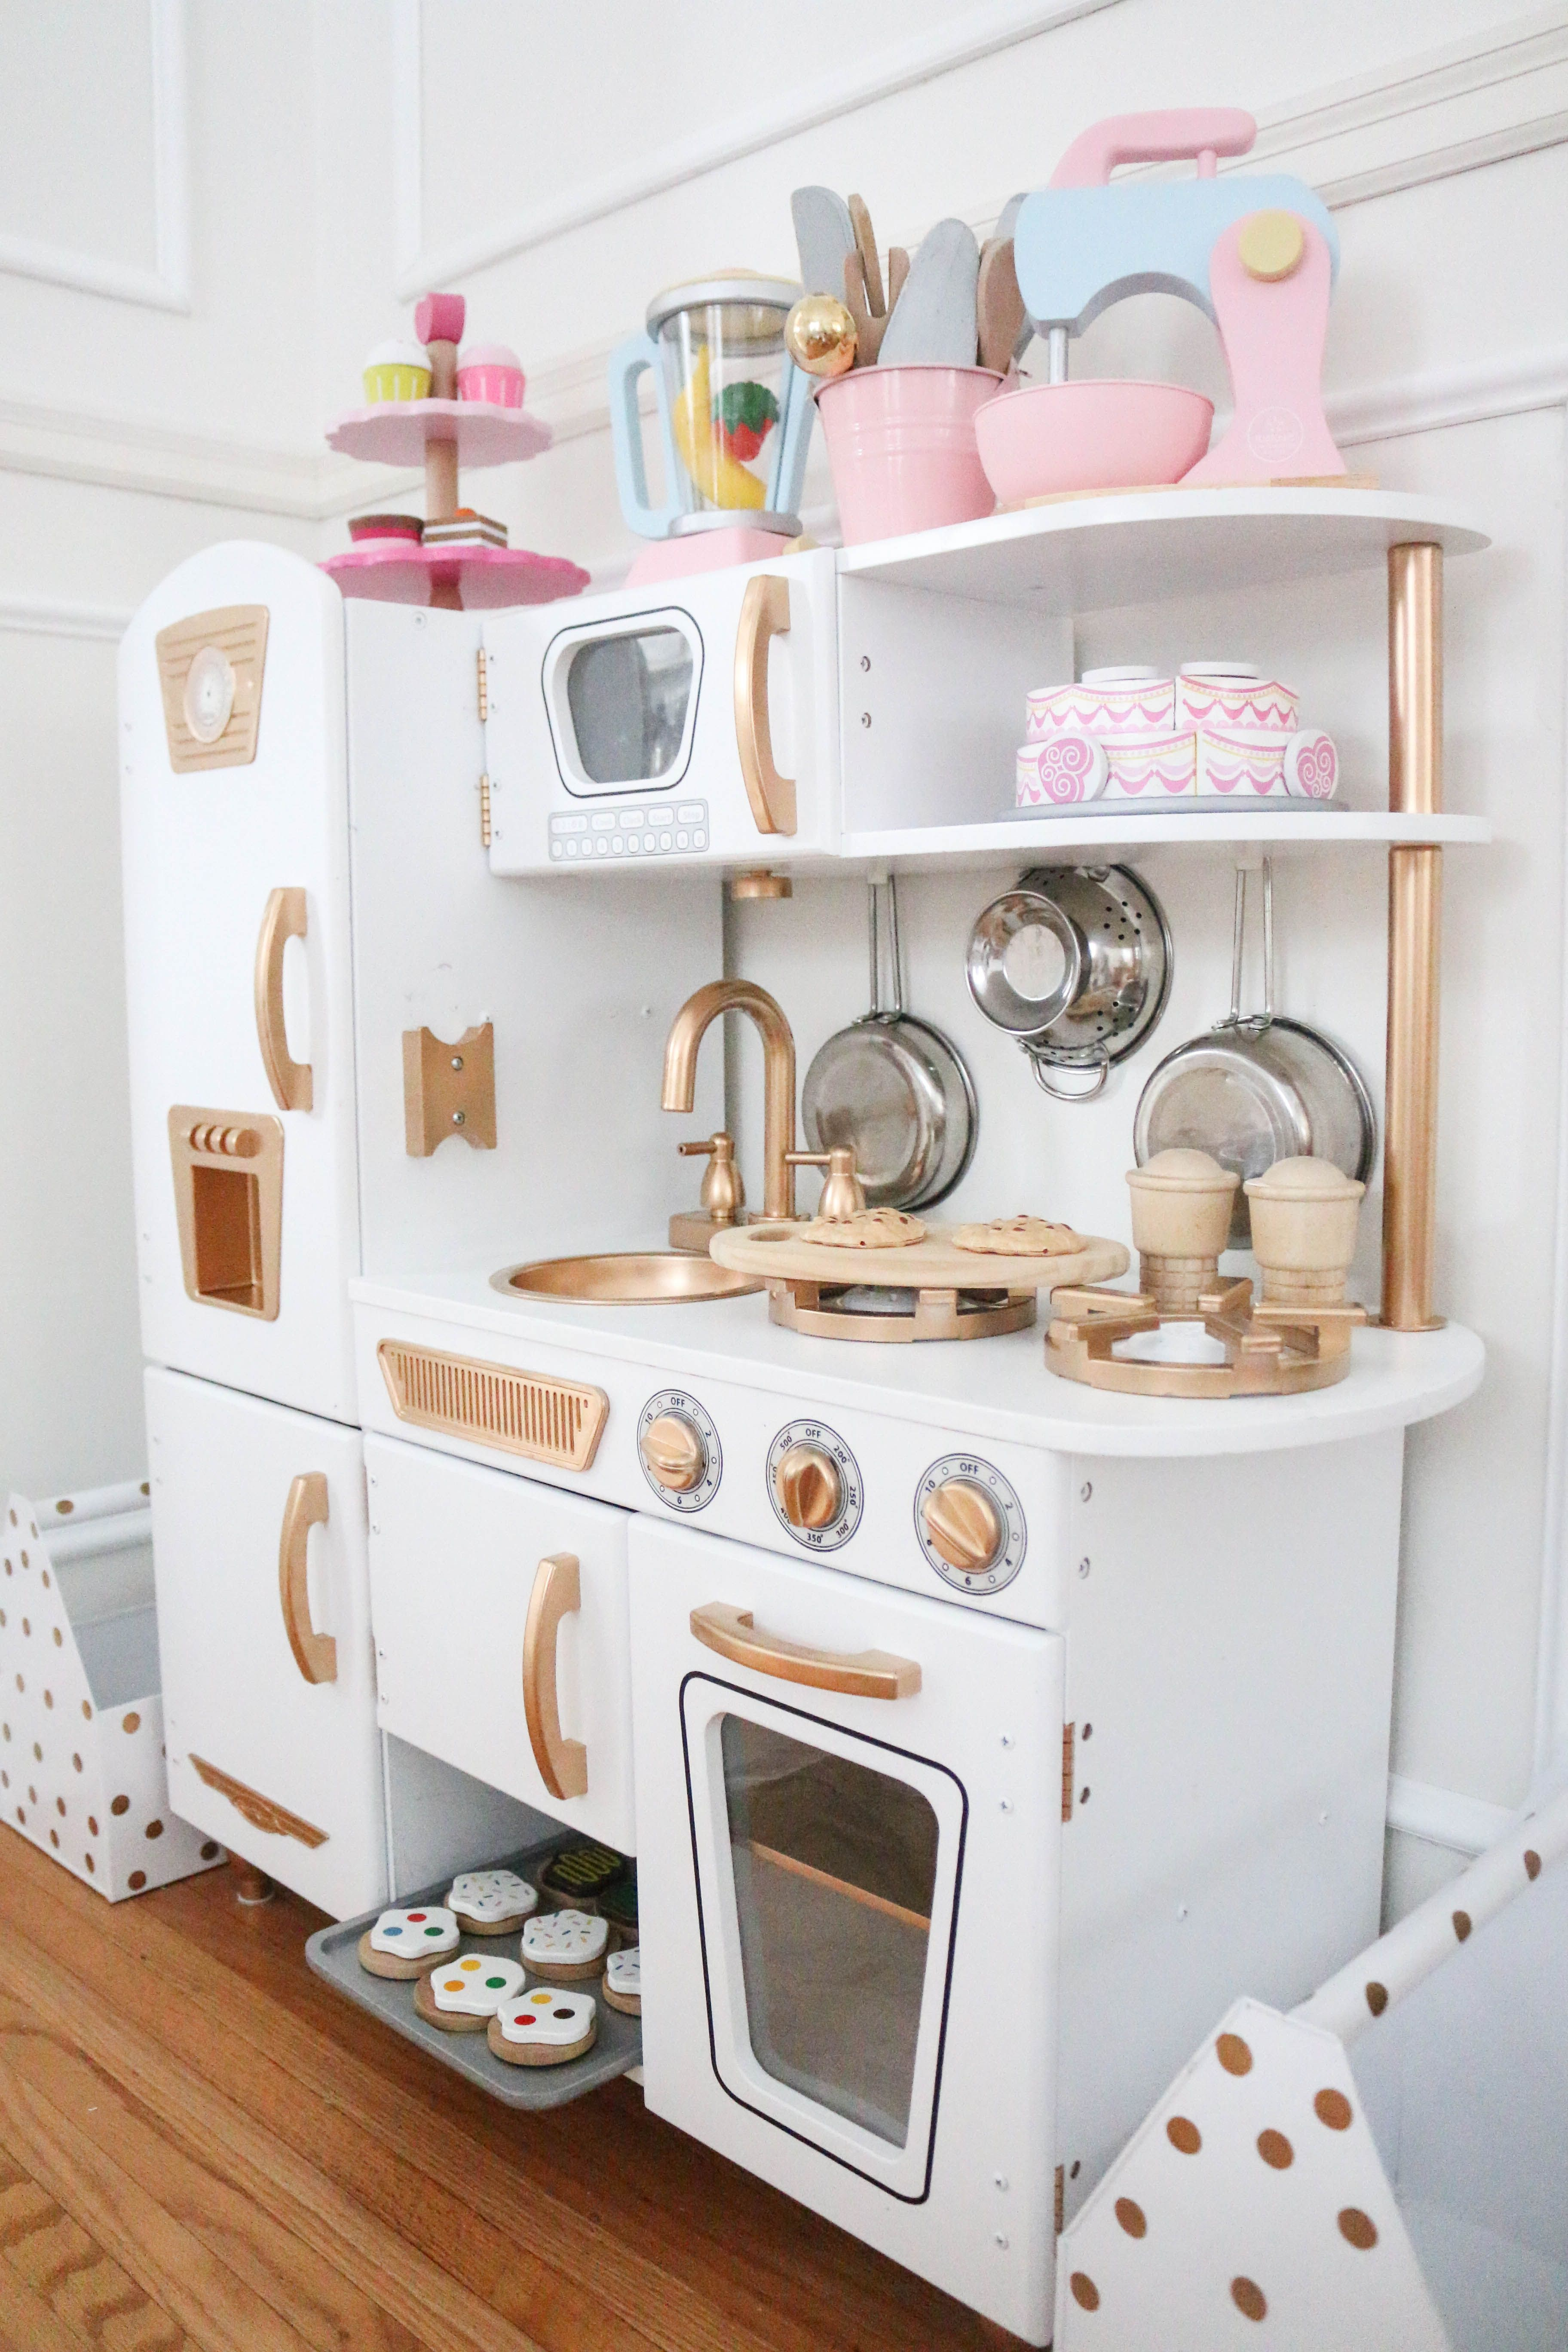 Kidkraft Küche Country Gebraucht Shop Kitchen Here Gold Hardware Diy Below Click Below For Our